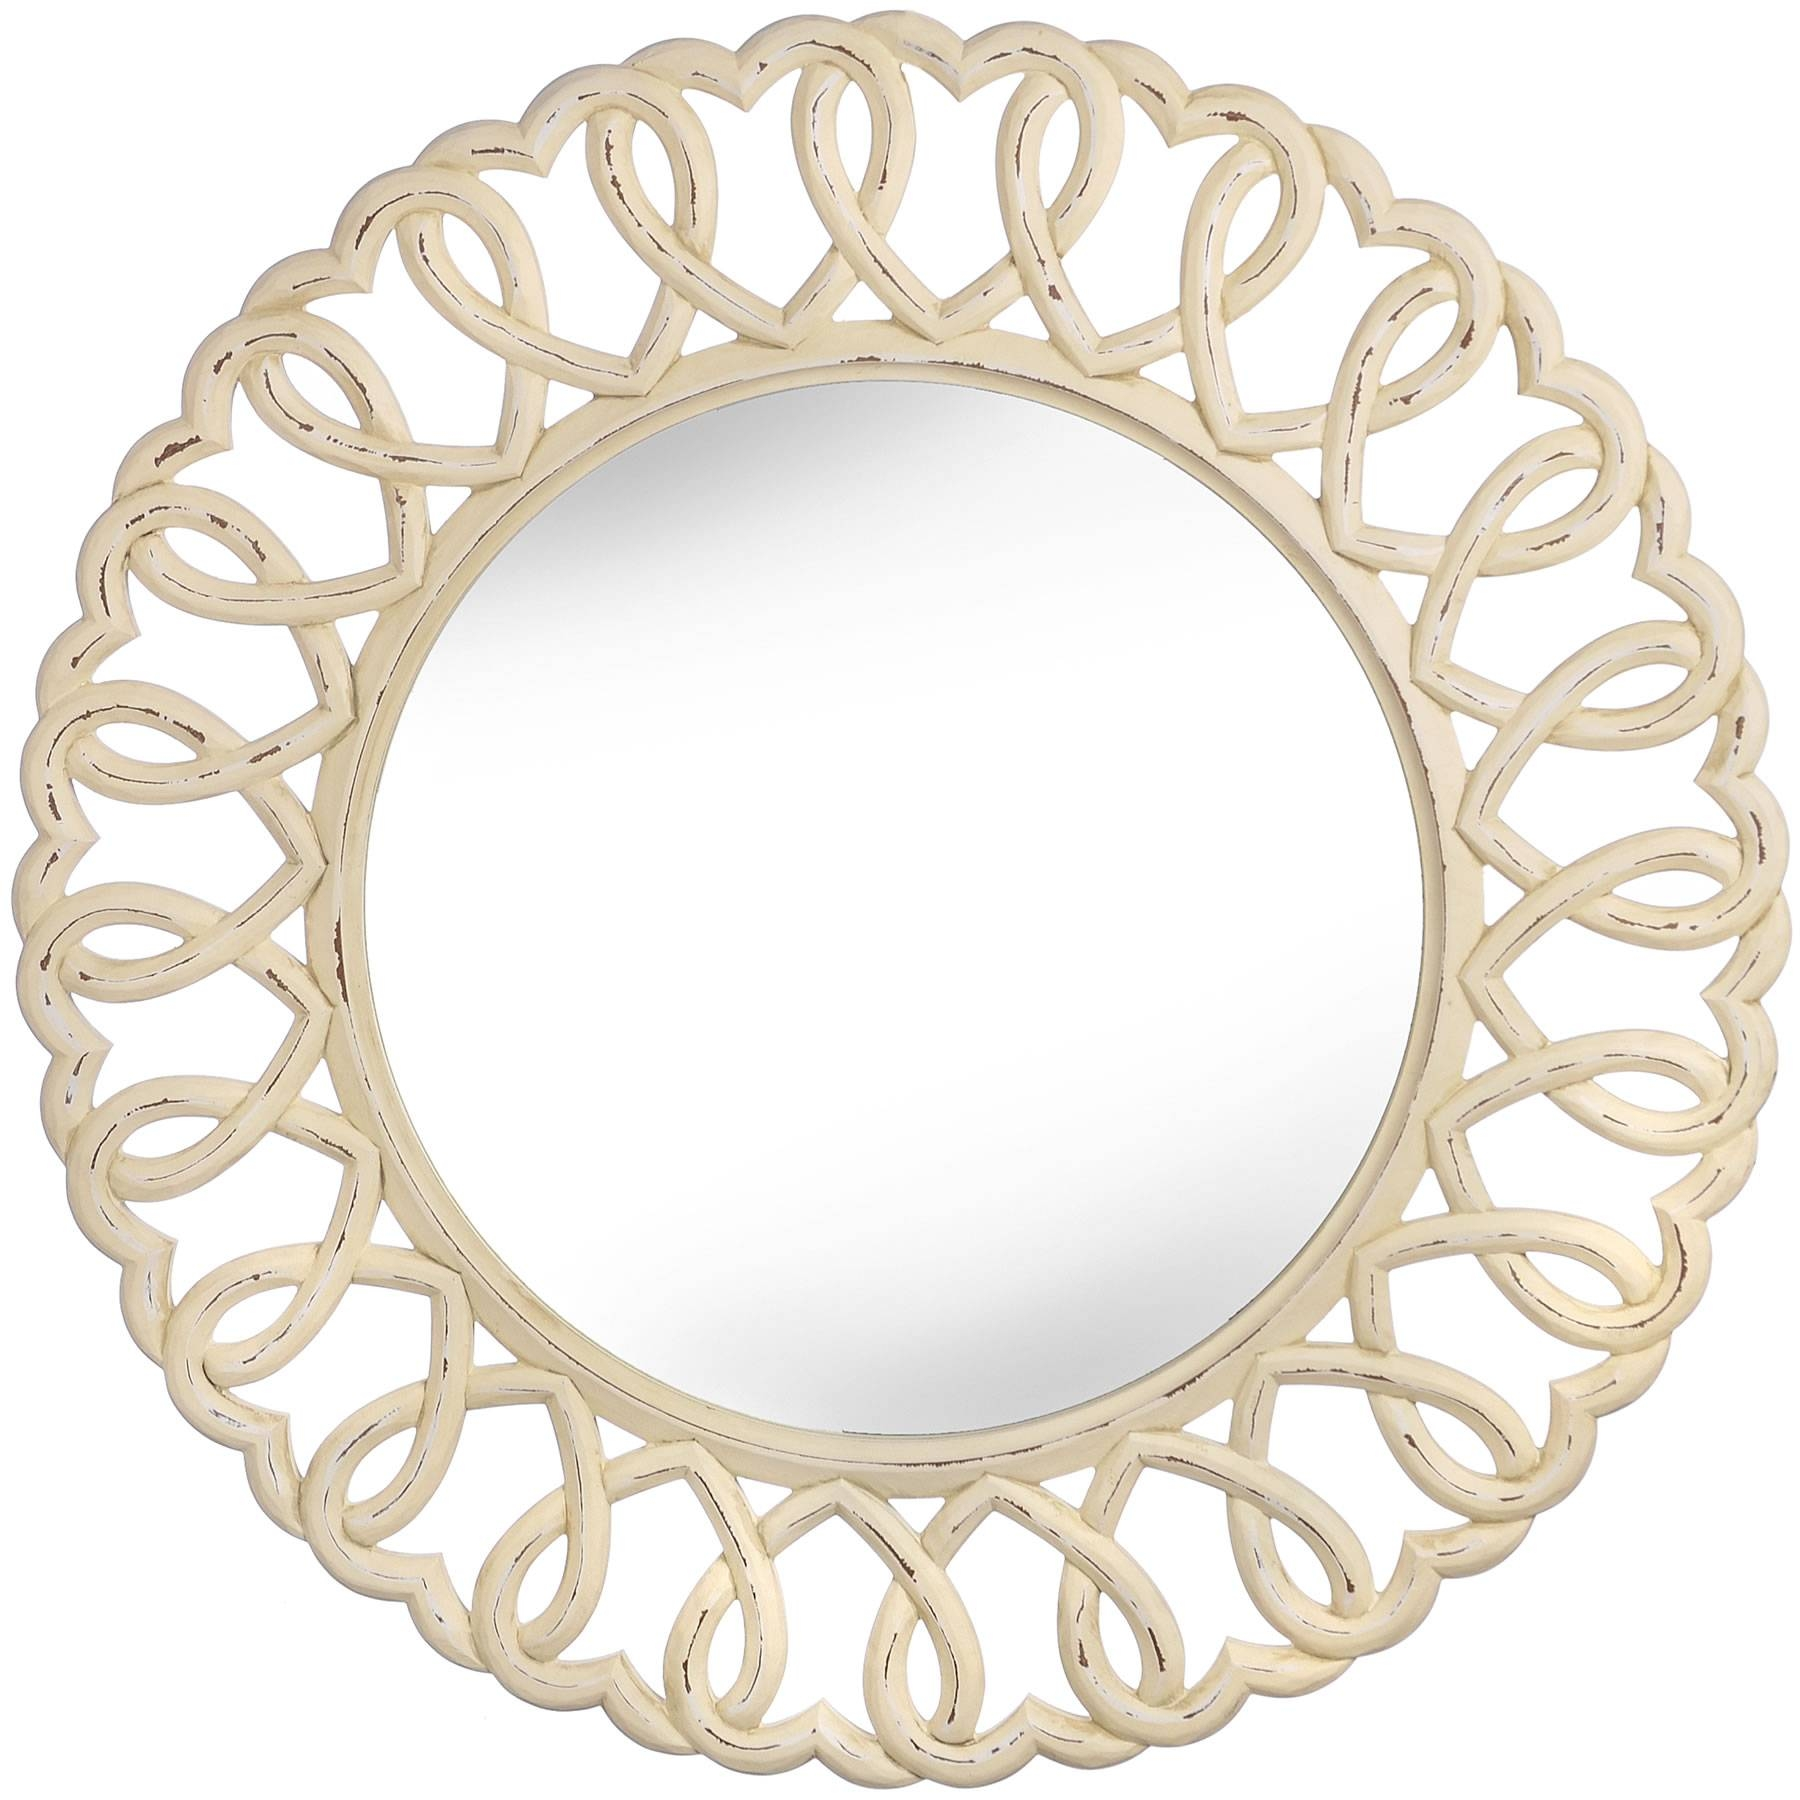 Cheap Shabby Chic Mirrors Uk: The Paper Mulberry: Perfectly Pale for Round Shabby Chic Mirrors (Image 6 of 15)